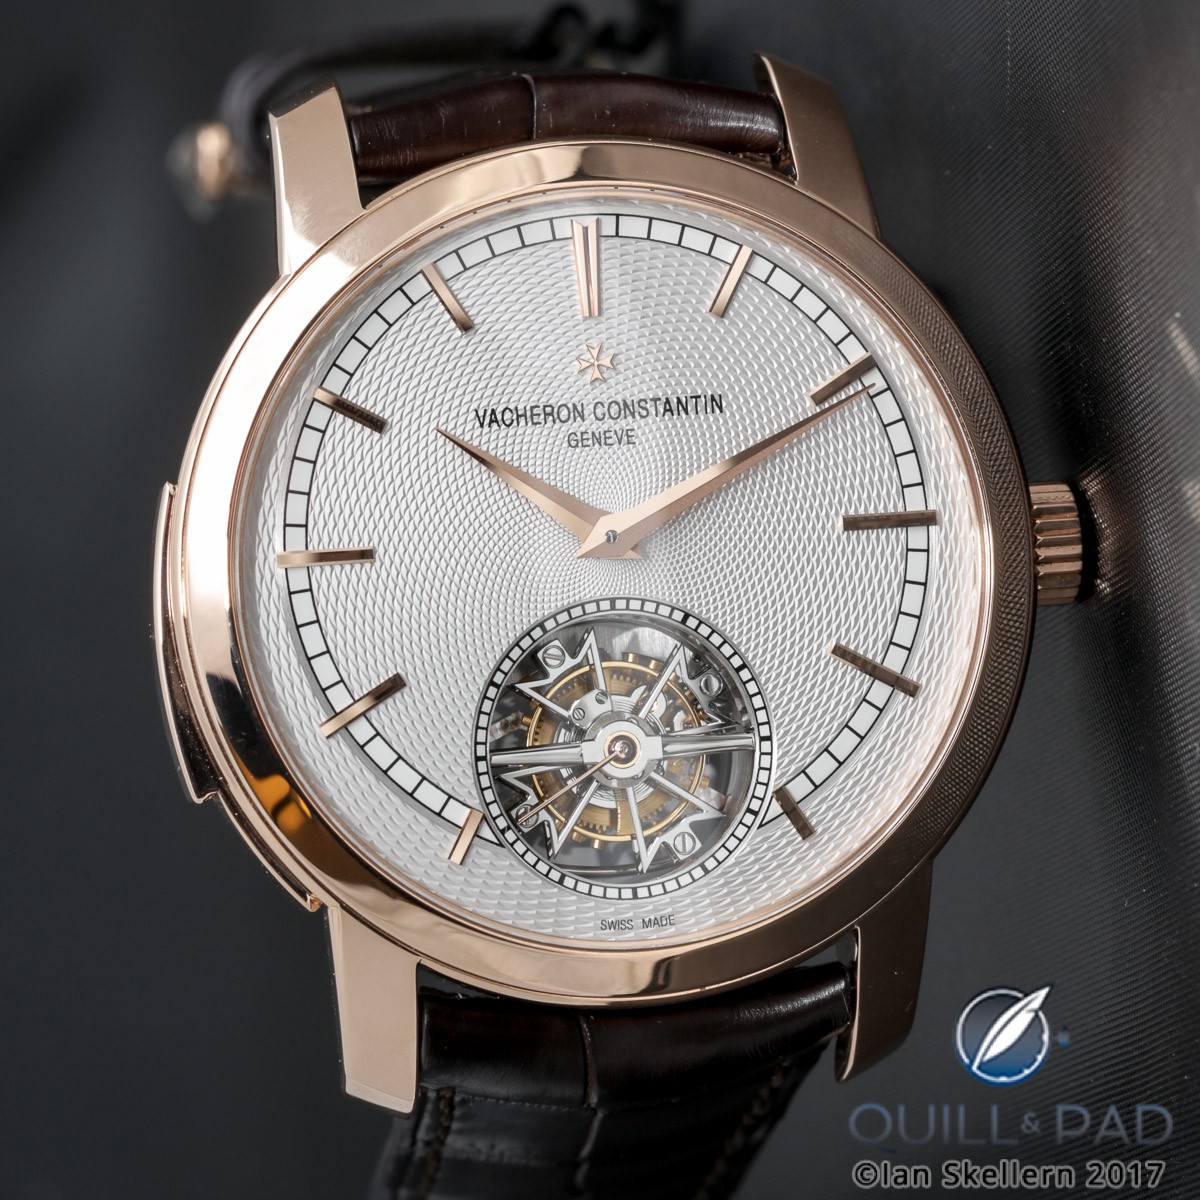 Geneva Seal certified - as are all Vacheron Constantin timepieces - Traditionnelle Minute Repeater Tourbillon